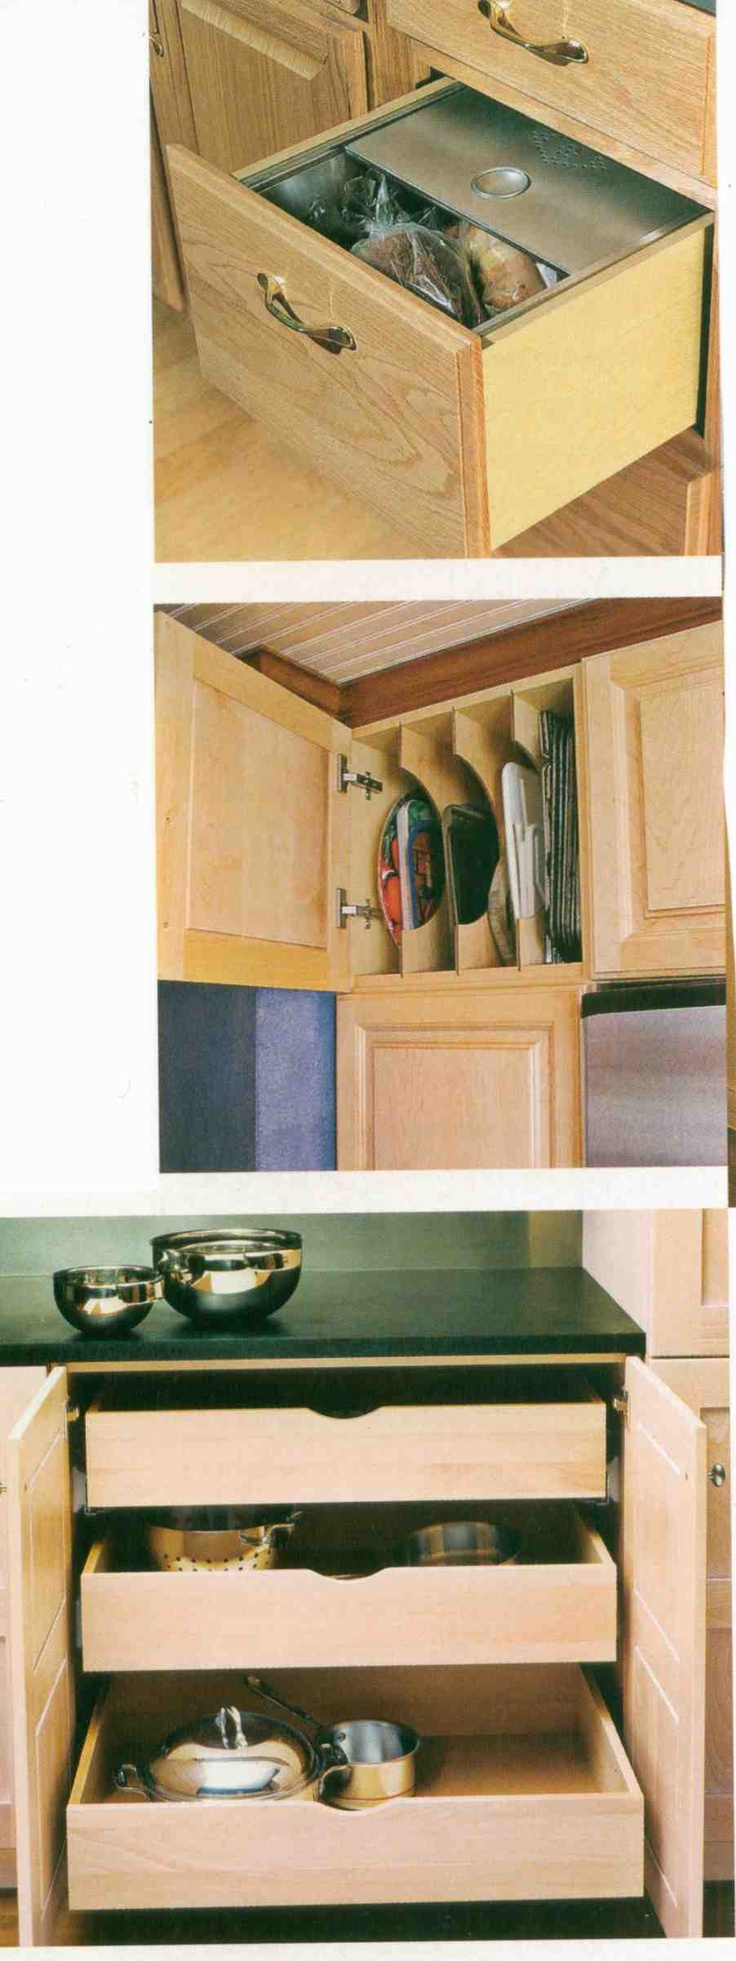 How Much Would It Cost Renovate Kitchen